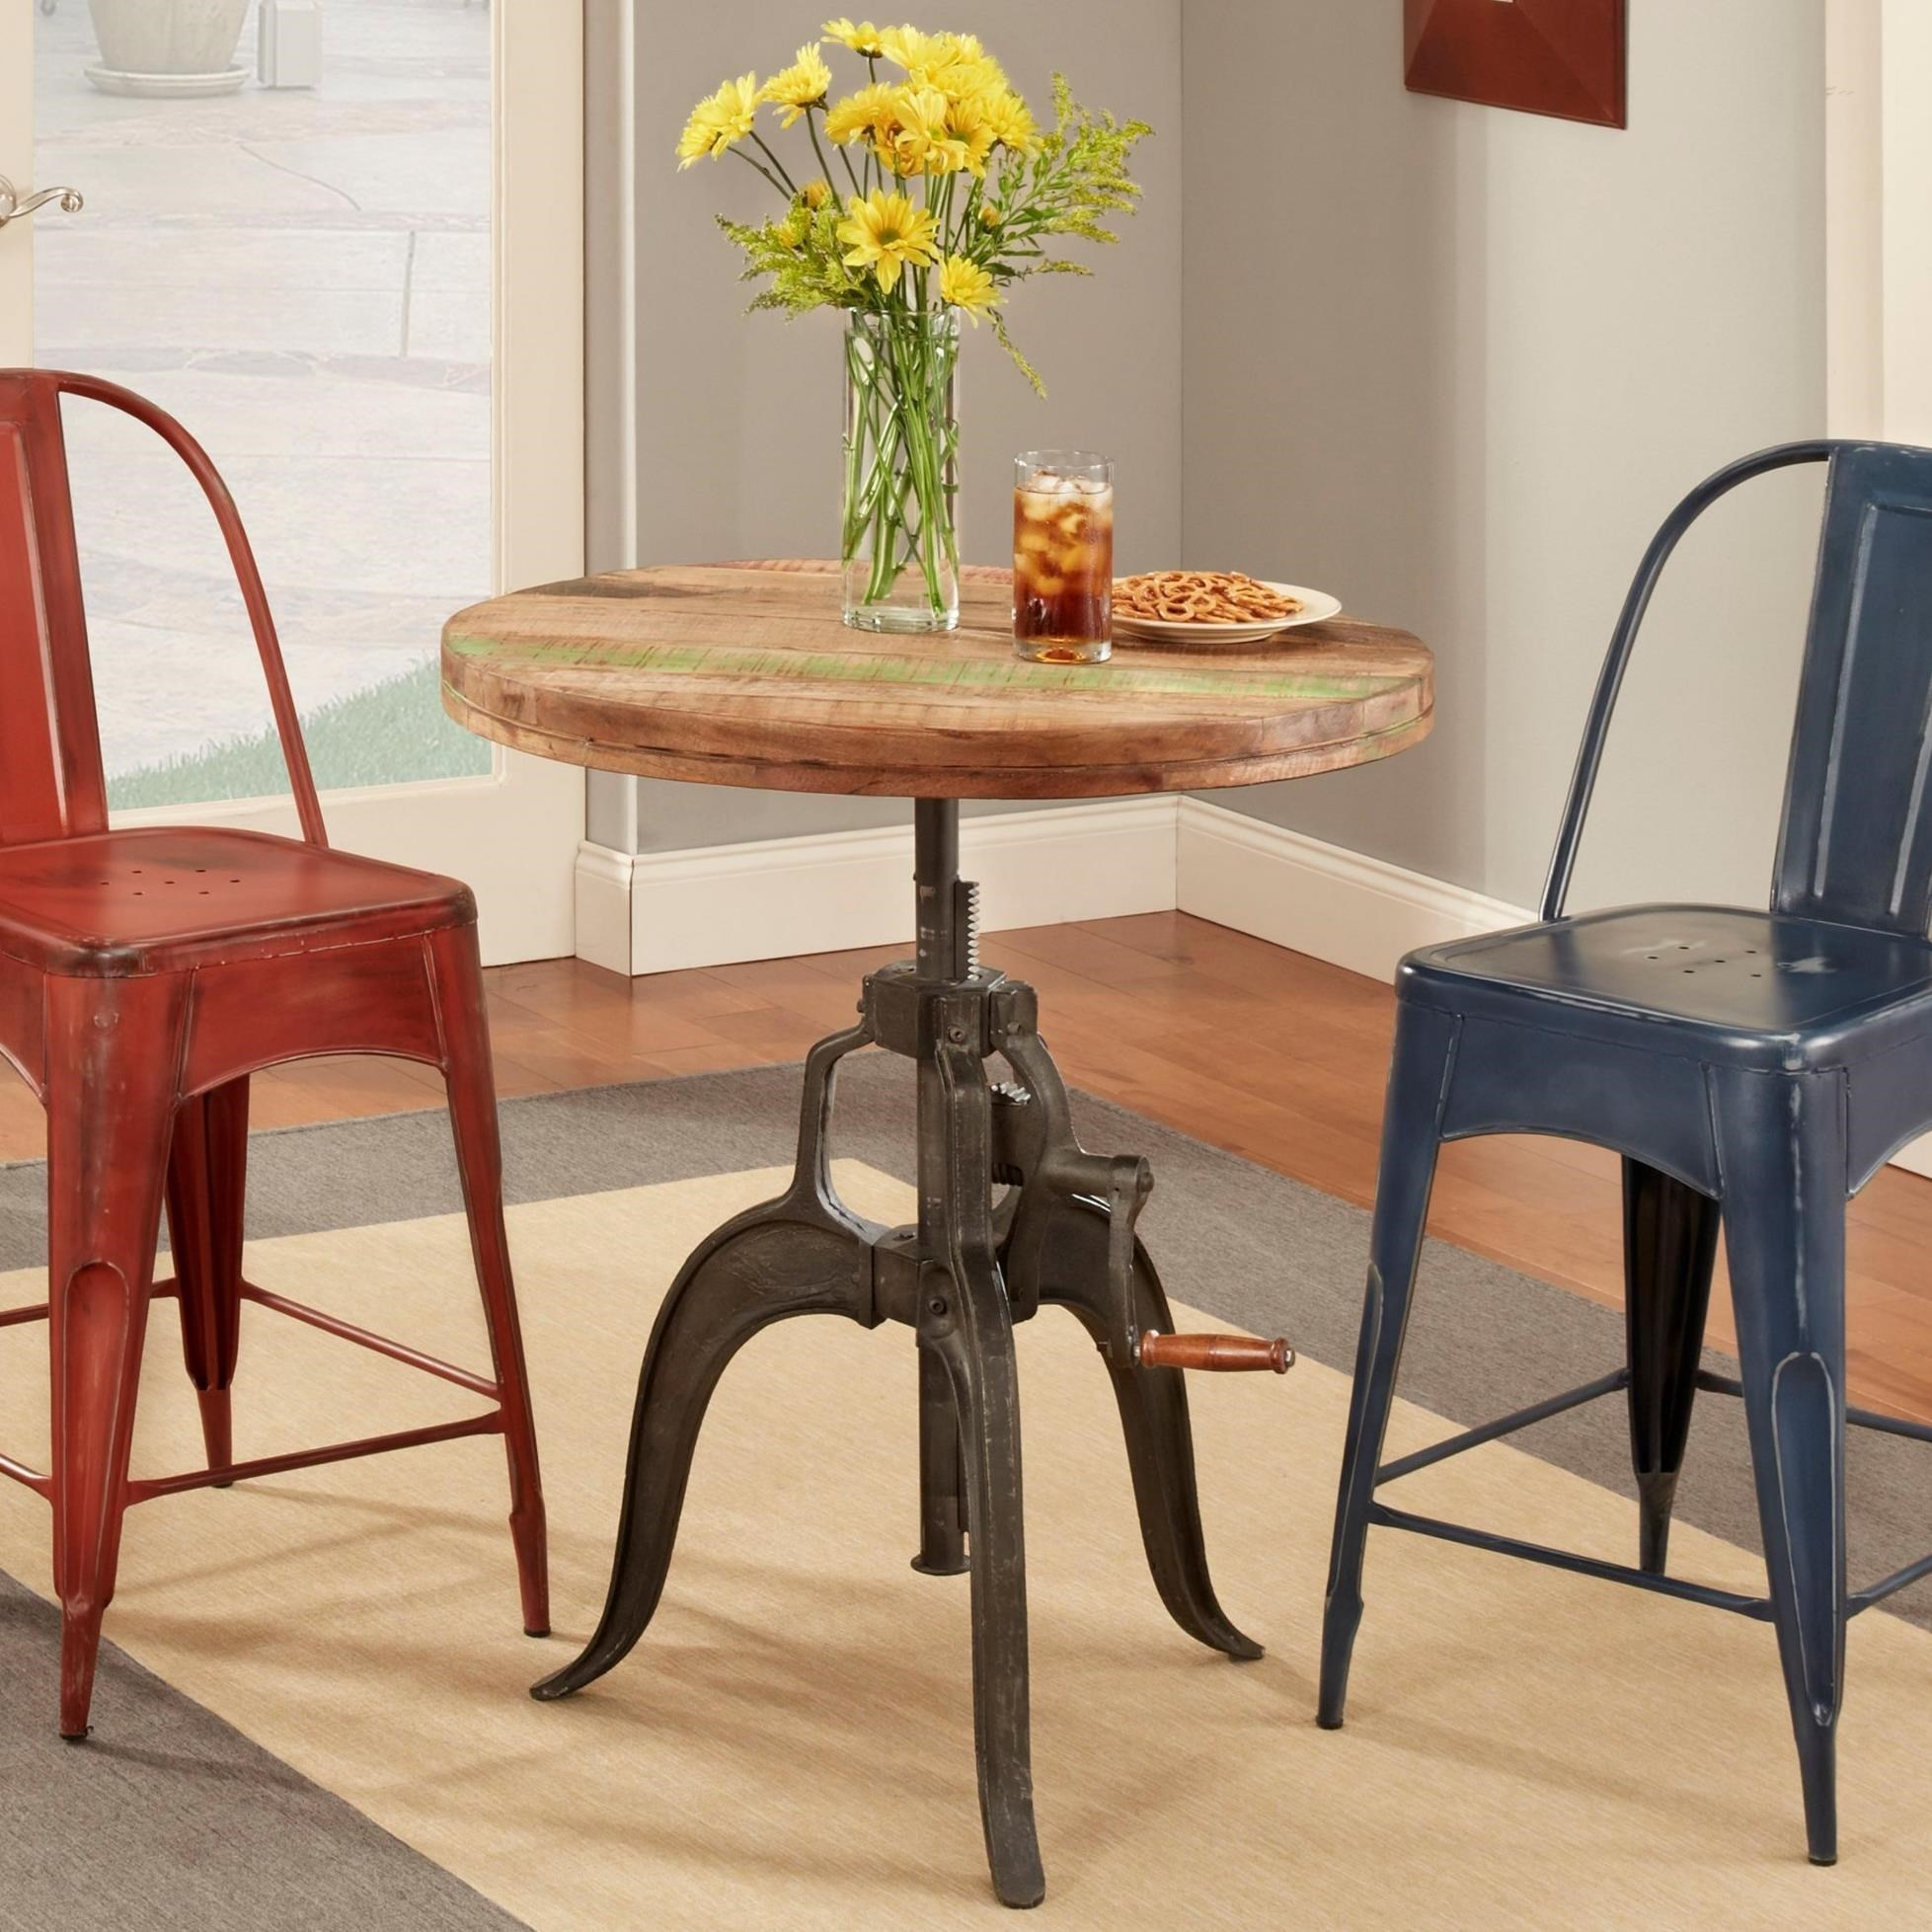 L Largo Rustic CollectiblesRound Wood Adjustable Height Table